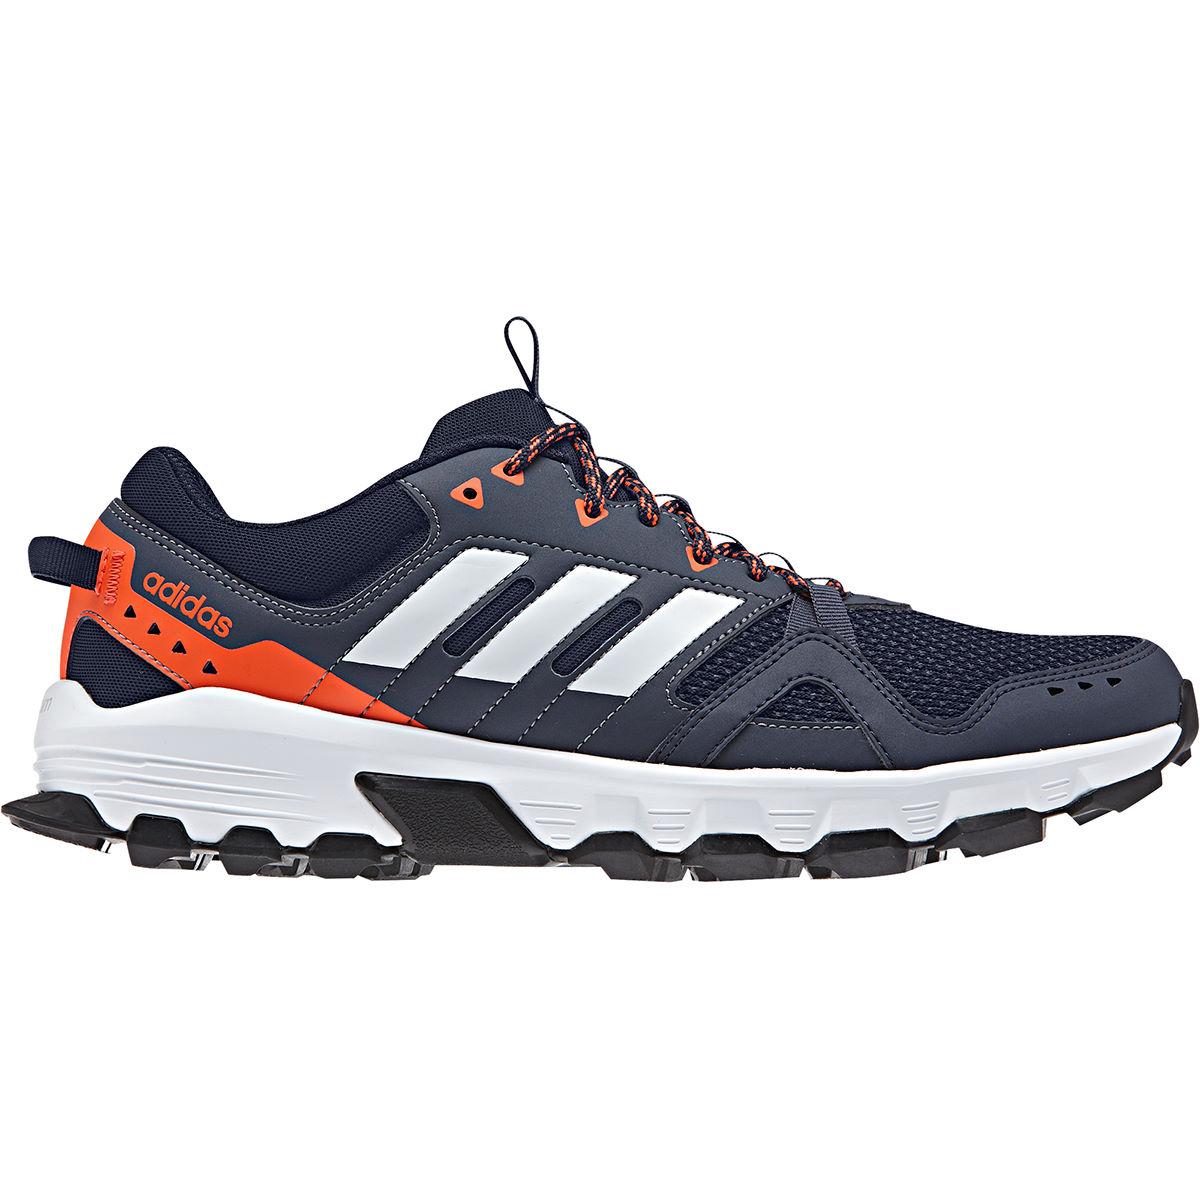 adidas Rockadia Trail Shoes - Zapatillas de trail running